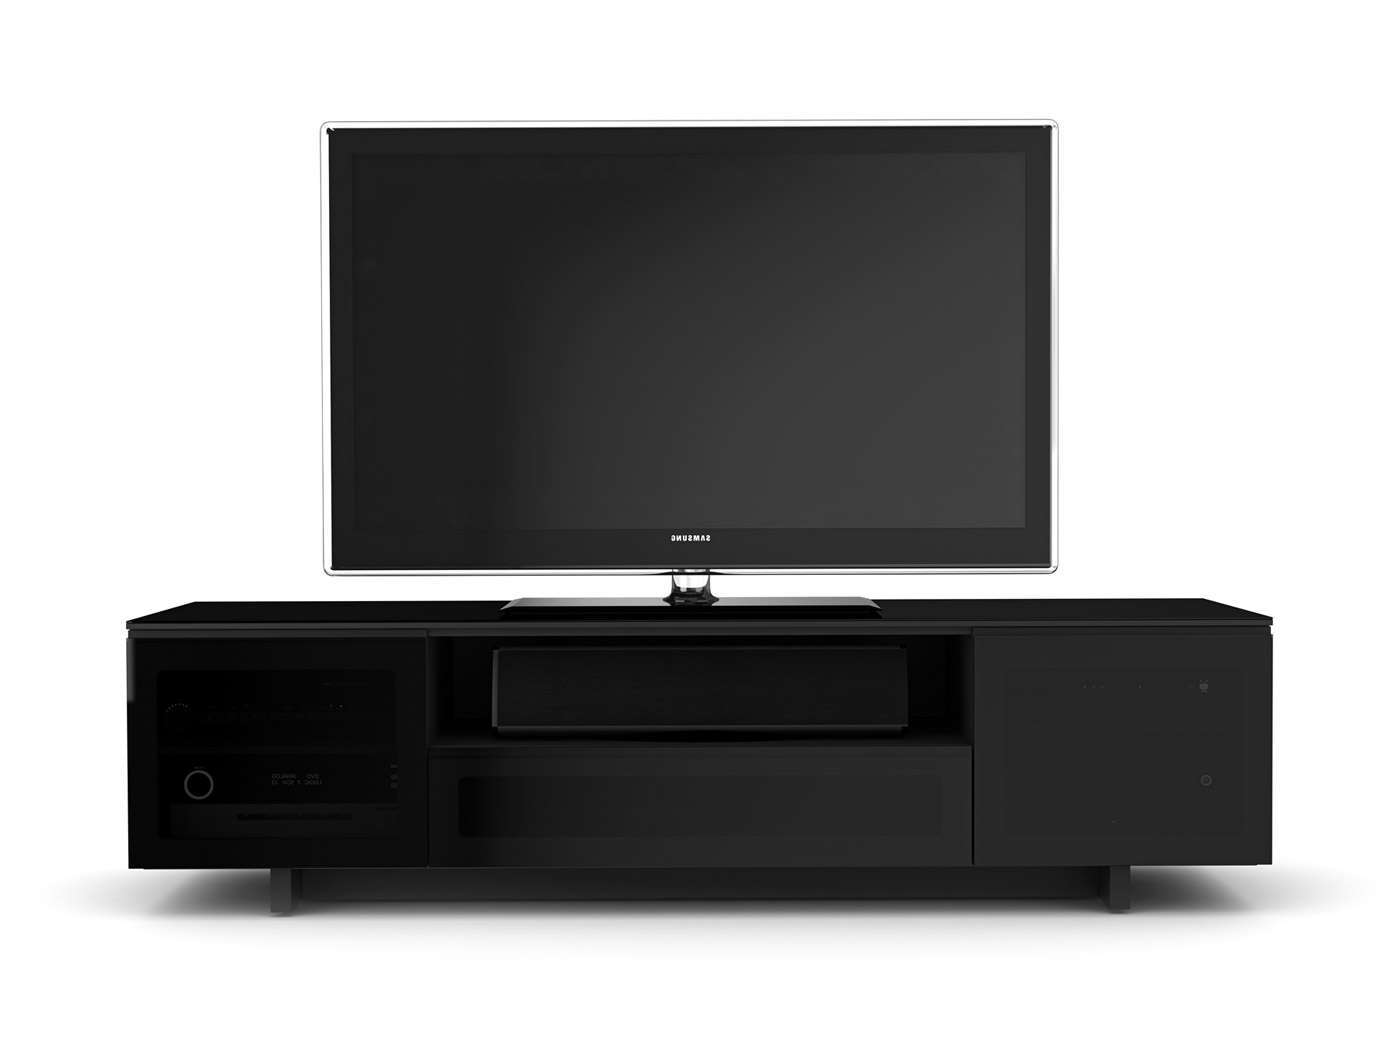 Modern Tv Stands Stylishly Fit With Contemporary Decor With Black Modern Tv Stands (View 13 of 15)